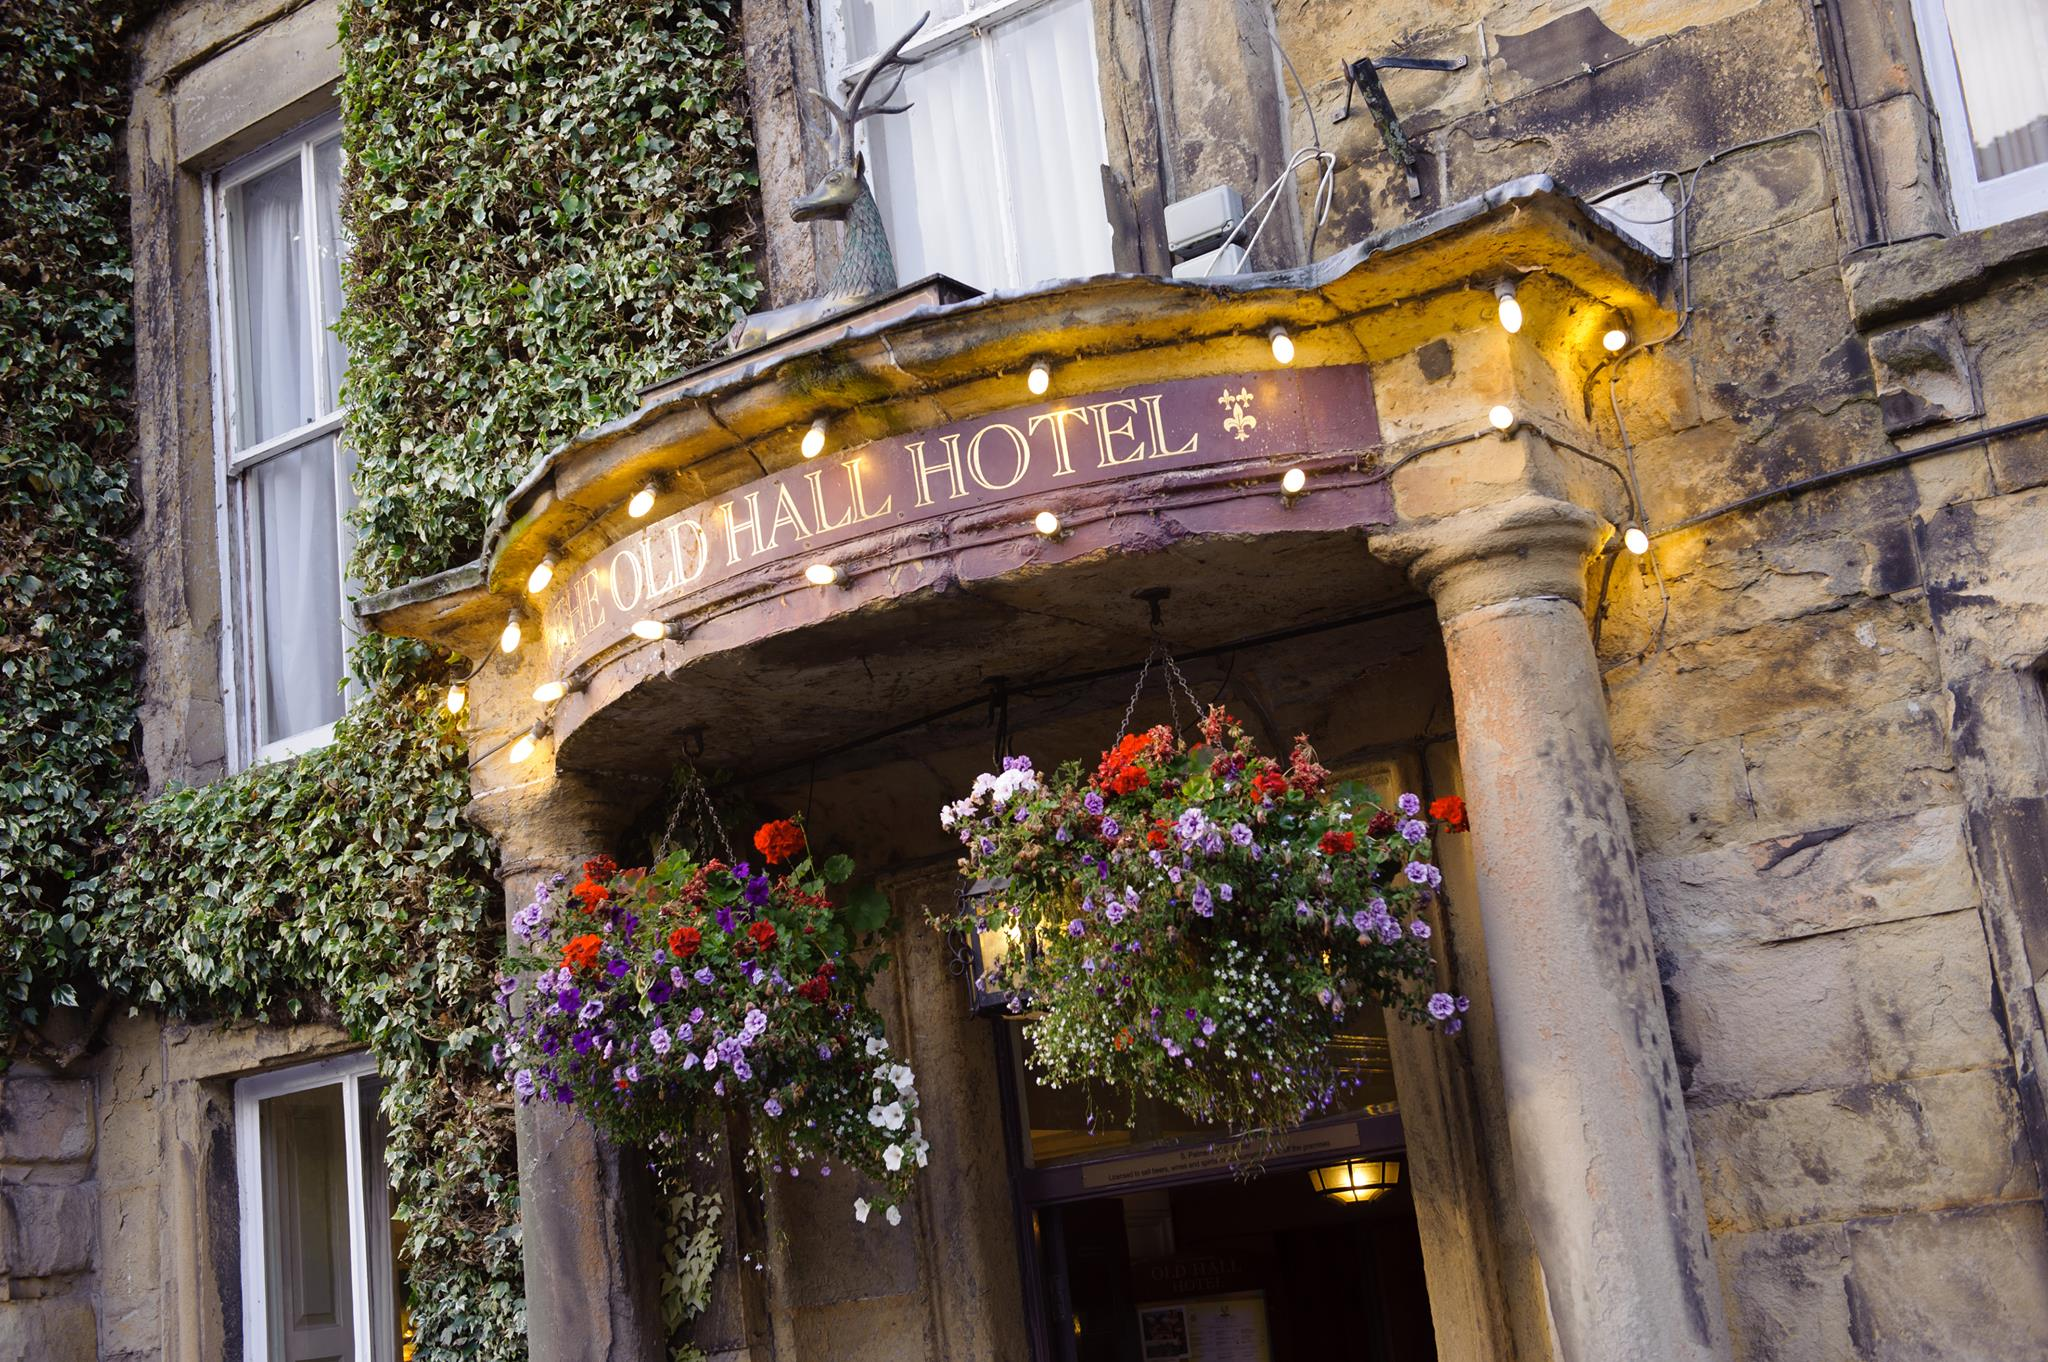 Old Hall Hotel Buxton